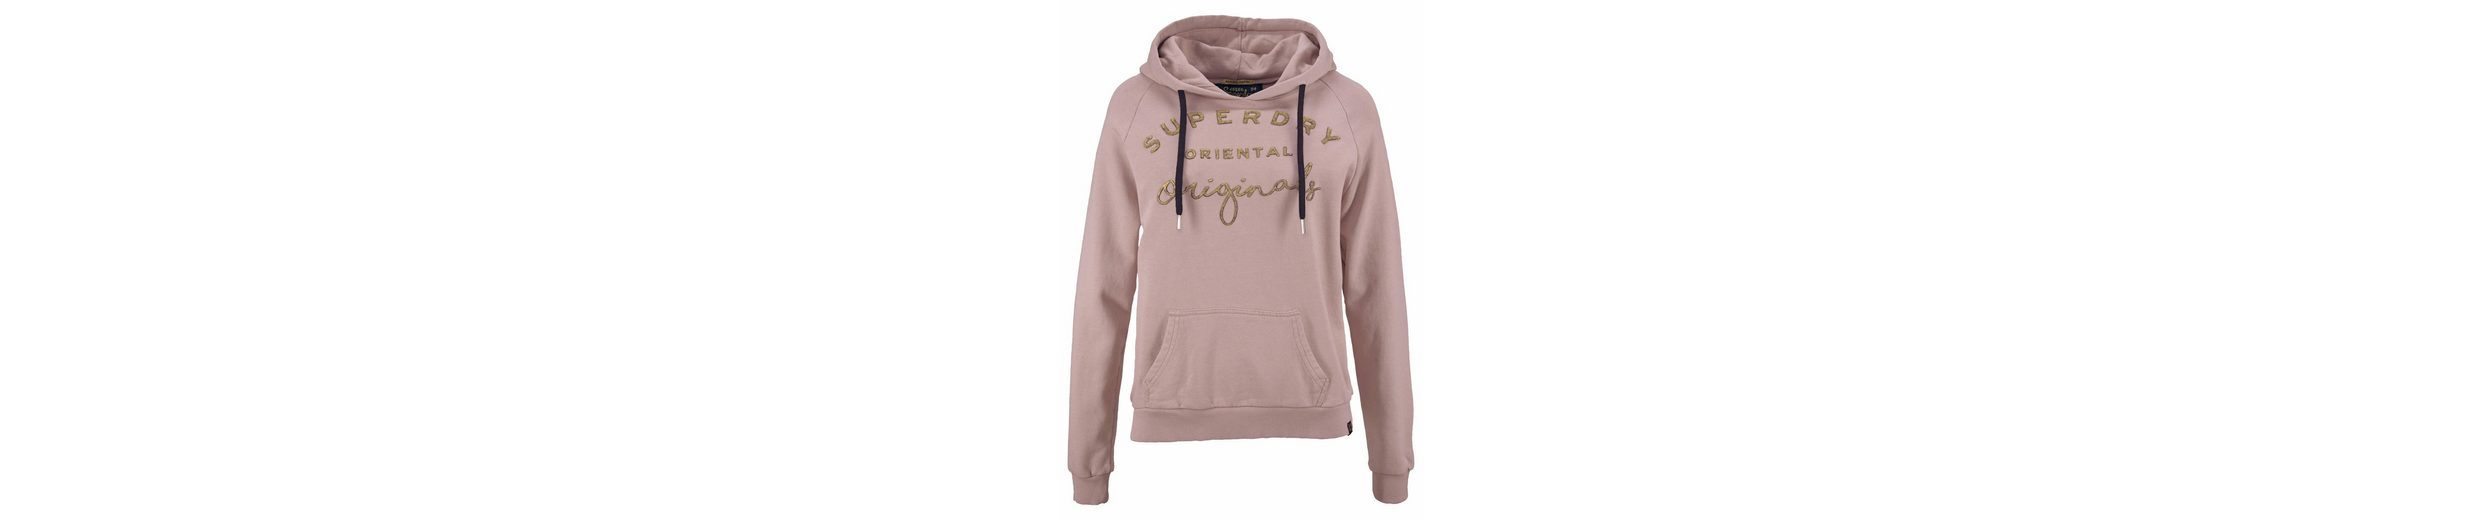 Superdry Sweatshirt ASTIBLE GRAPHIC HOOD, mit goldenem Frontprint im Vintage Look